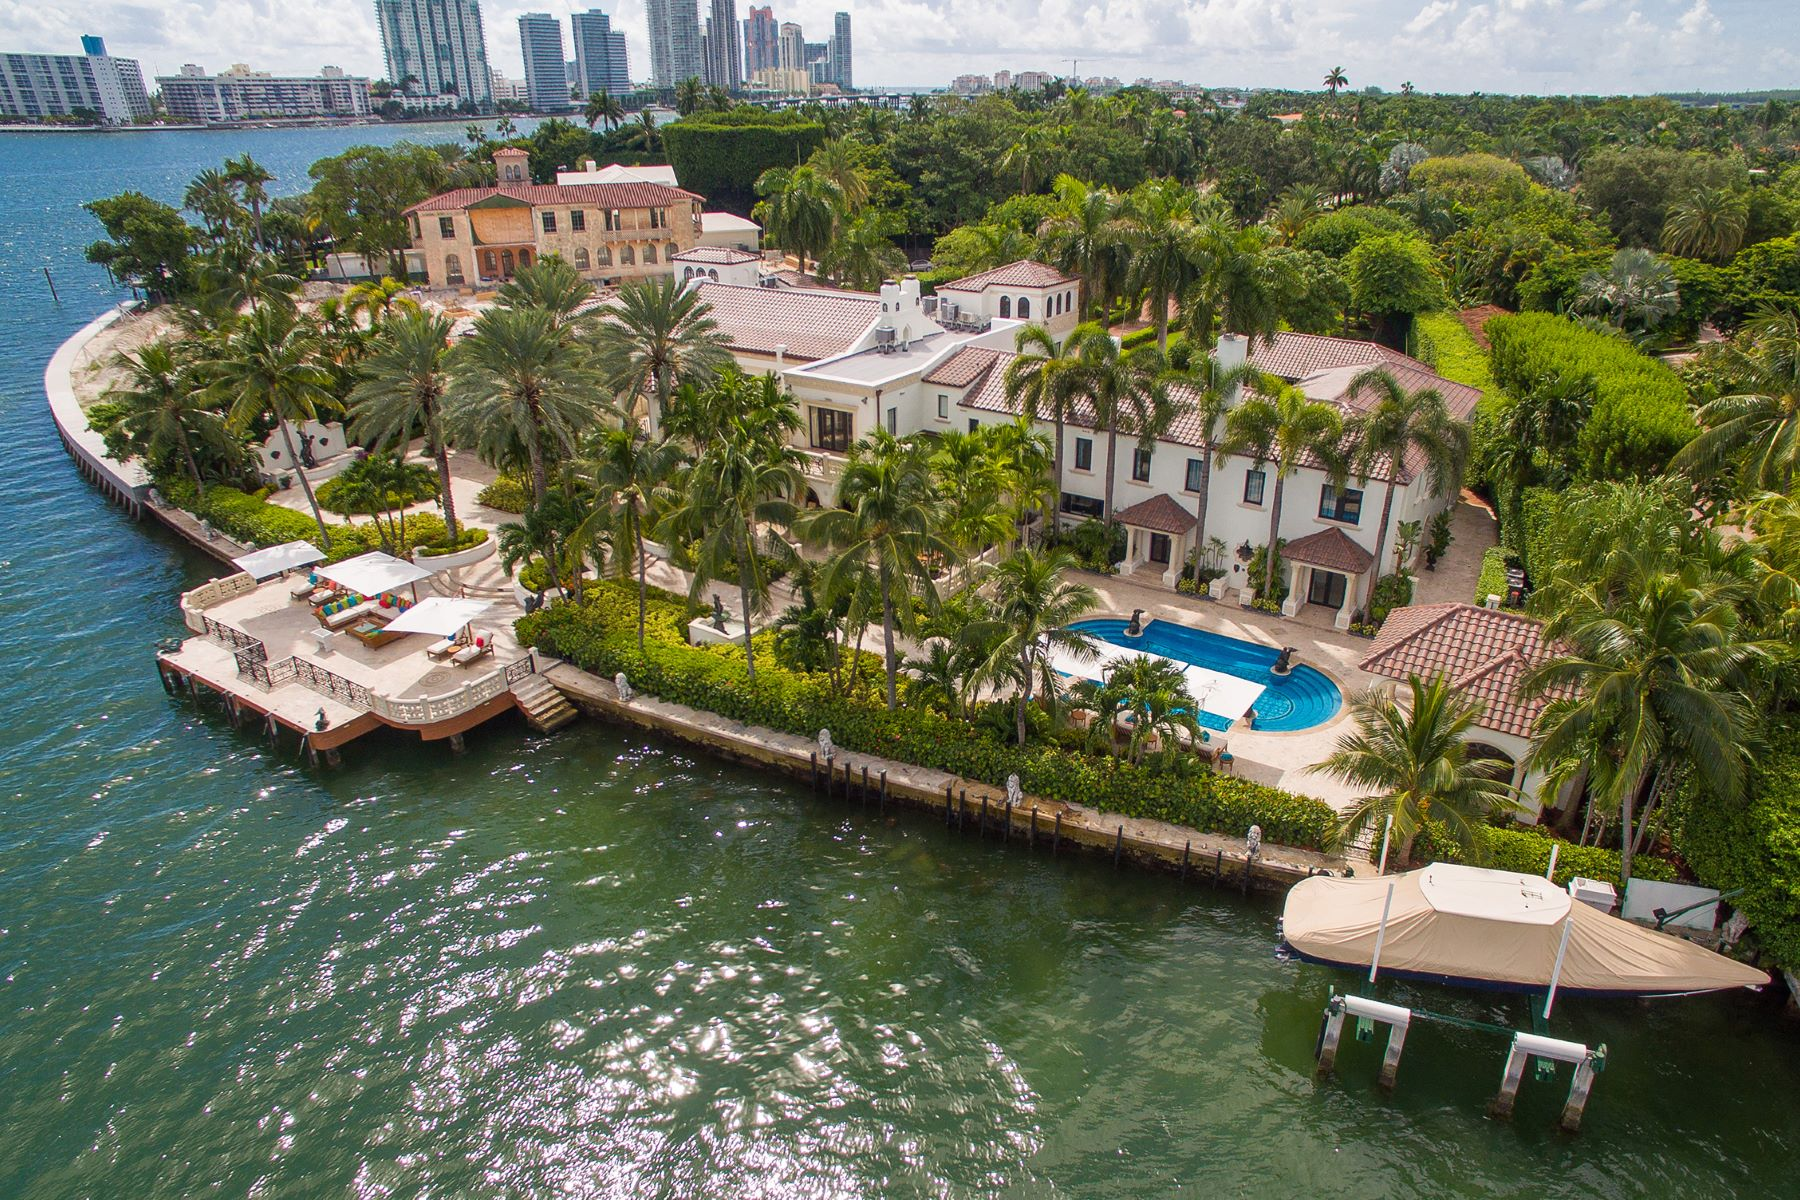 Single Family Home for Sale at 46 Star Island Dr 46 Star Island Drive, Miami Beach, Florida, 33139 United States